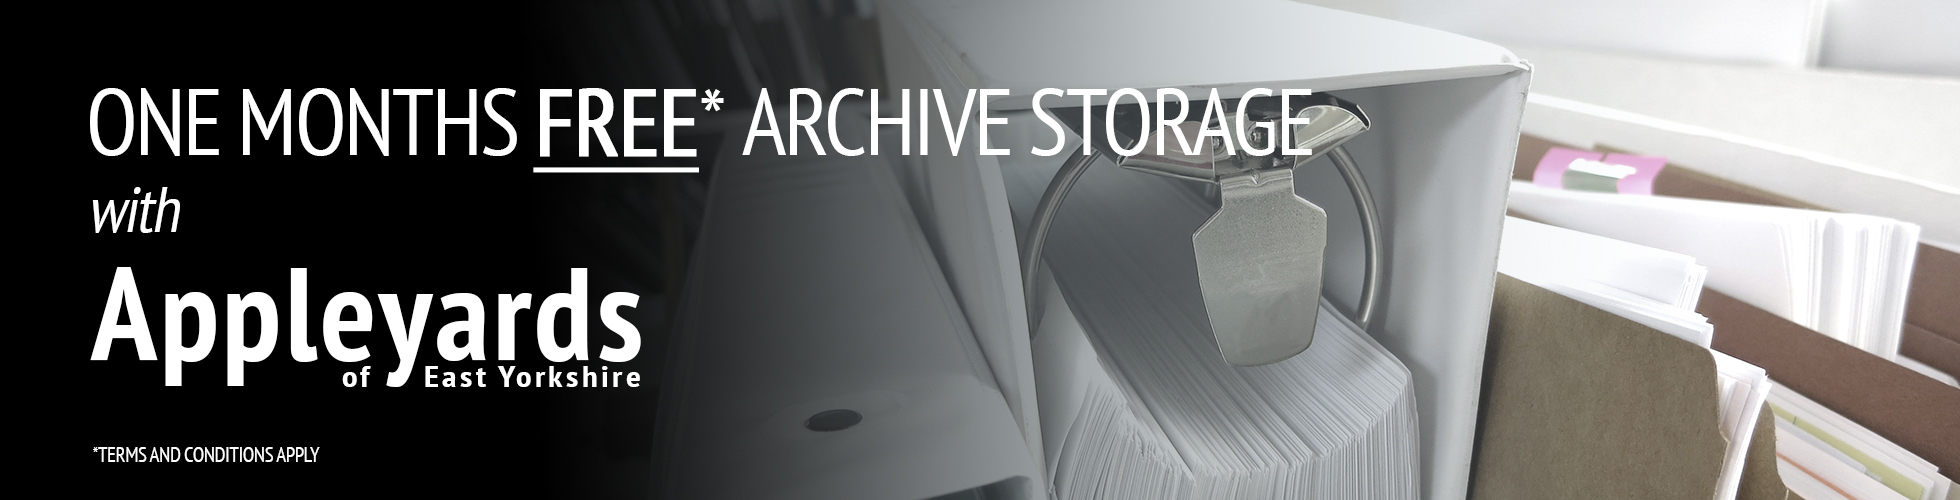 One month free archive storage